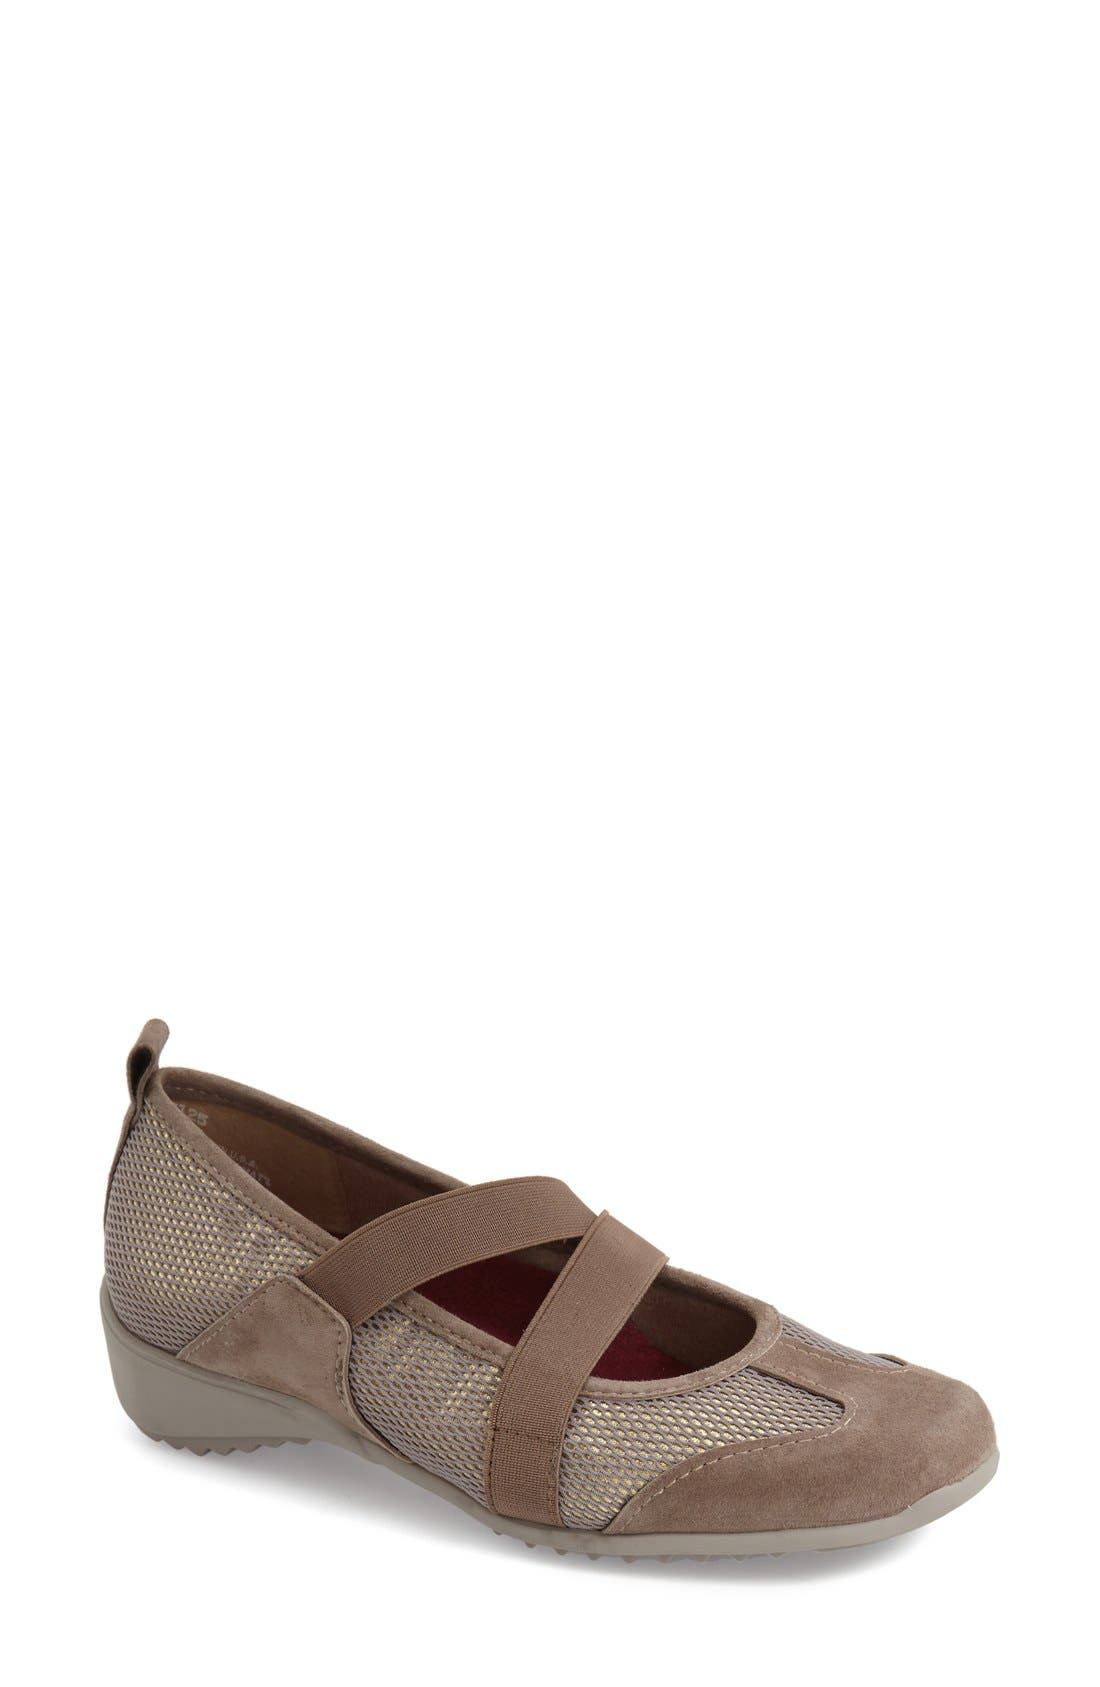 Main Image - Munro 'Zip' Mary Jane Flat (Women)